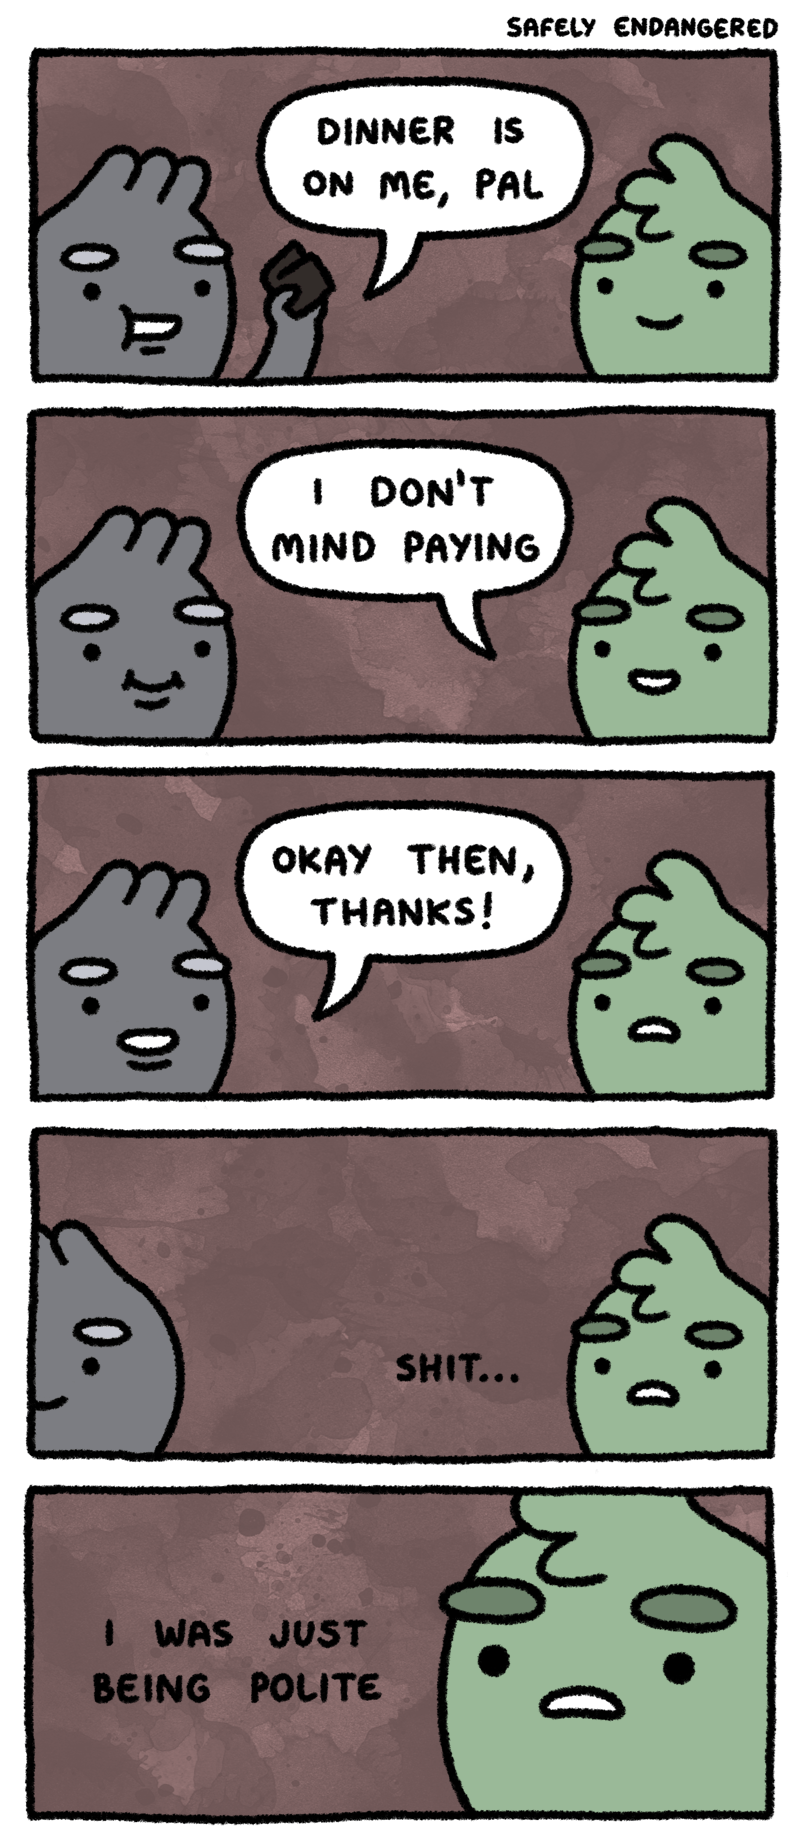 Comic about two people trying to offer to pay for dinner, one says they were just trying to be polite and they don't actually have money